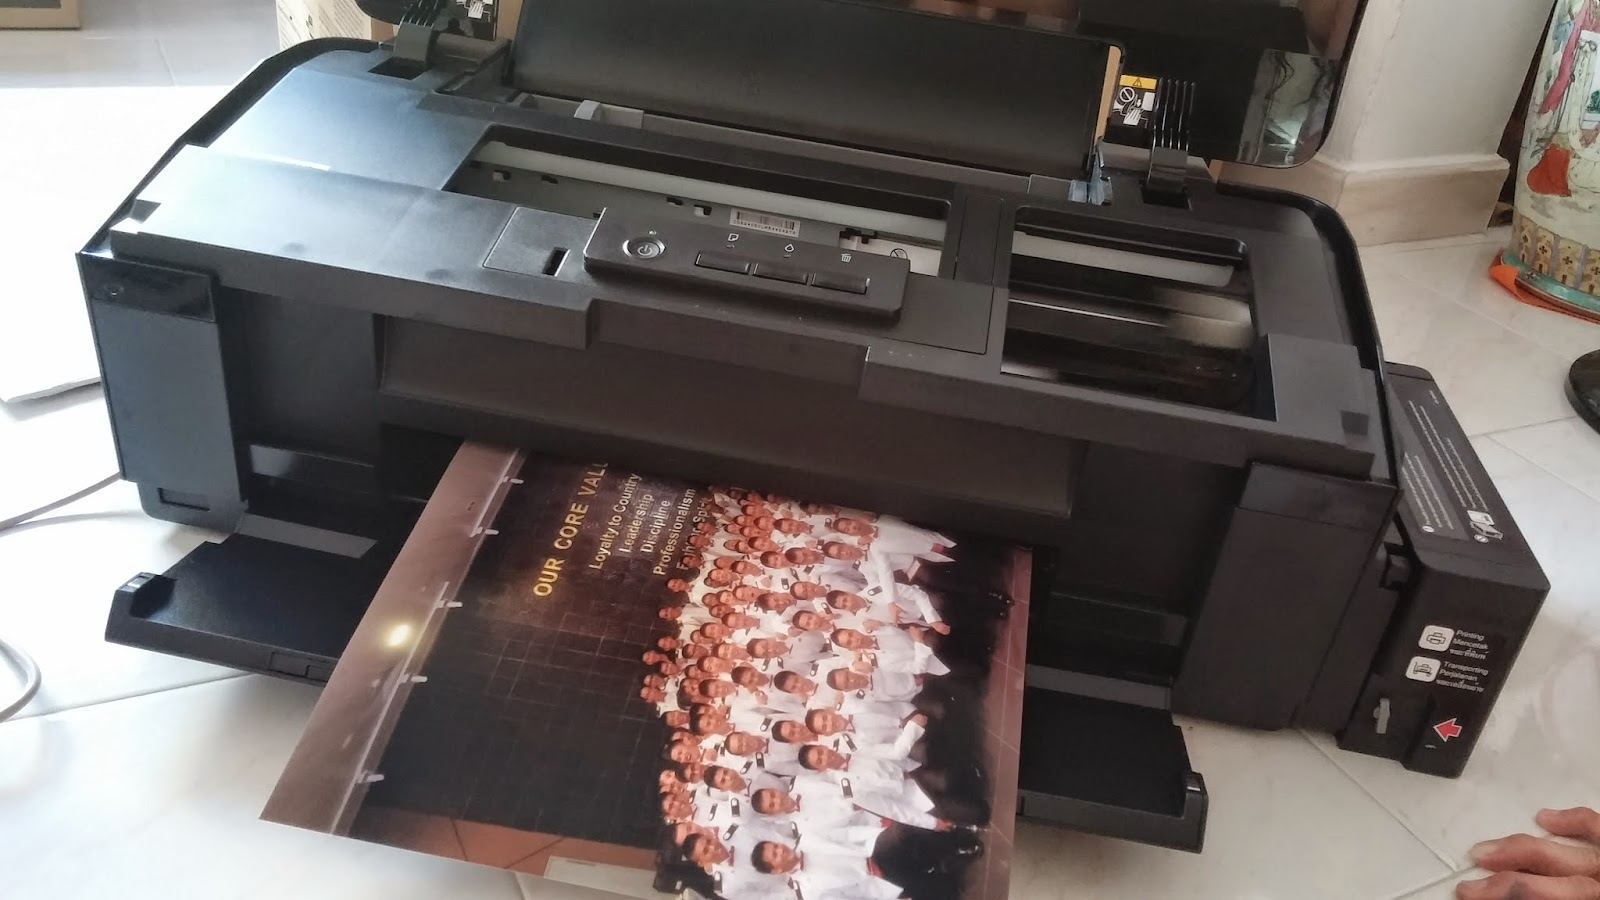 Best color printing quality - L1800 Printer Is One Of Its Kind As It Is Able To Print Photos Of Up To A3 Size This Made It Possible For Shops To Purchase This Printer For Their Photo